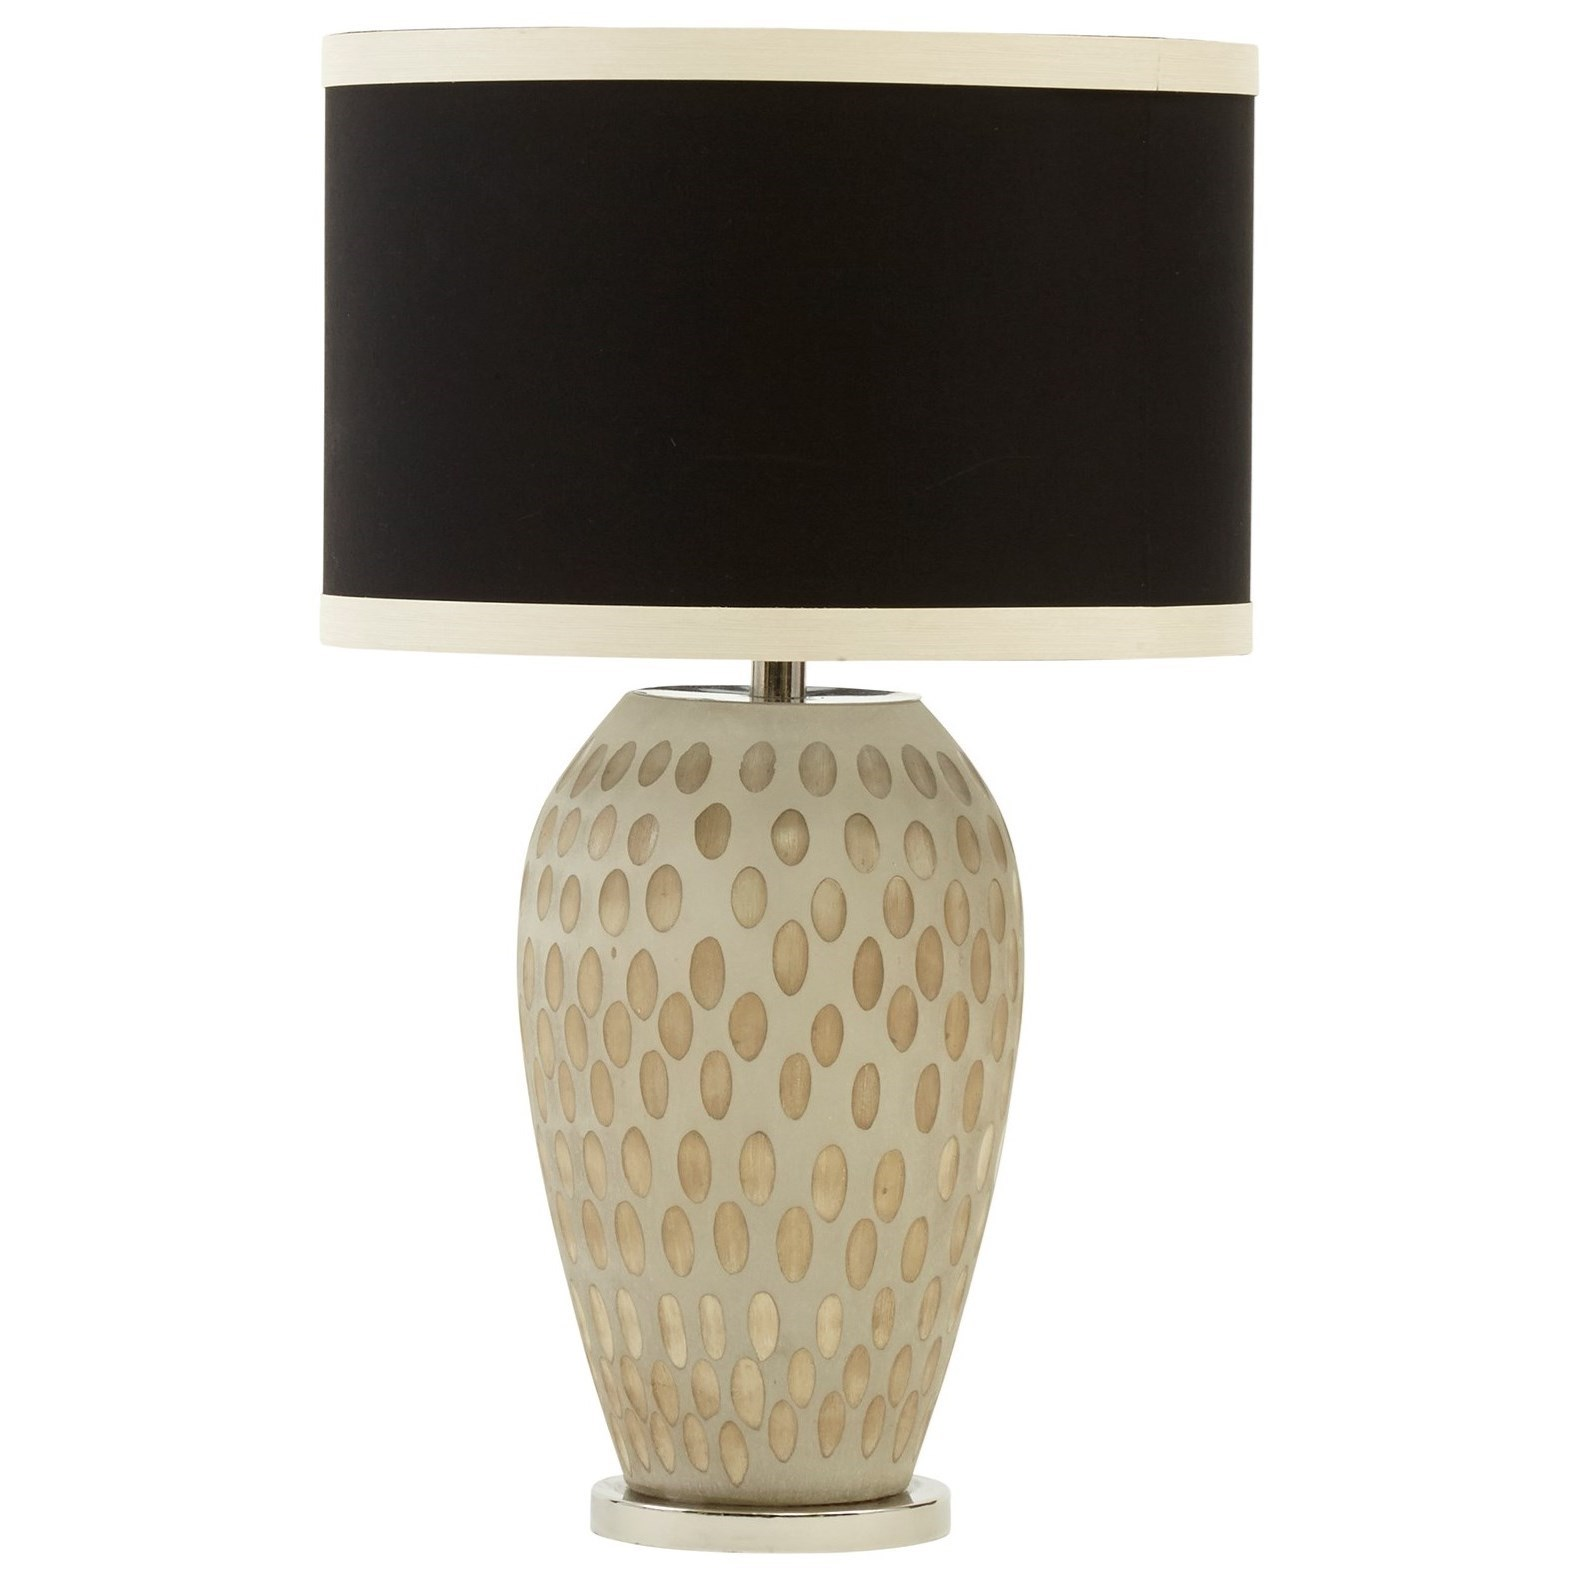 Lamps Thumba Table Lamp by Stein World at Westrich Furniture & Appliances